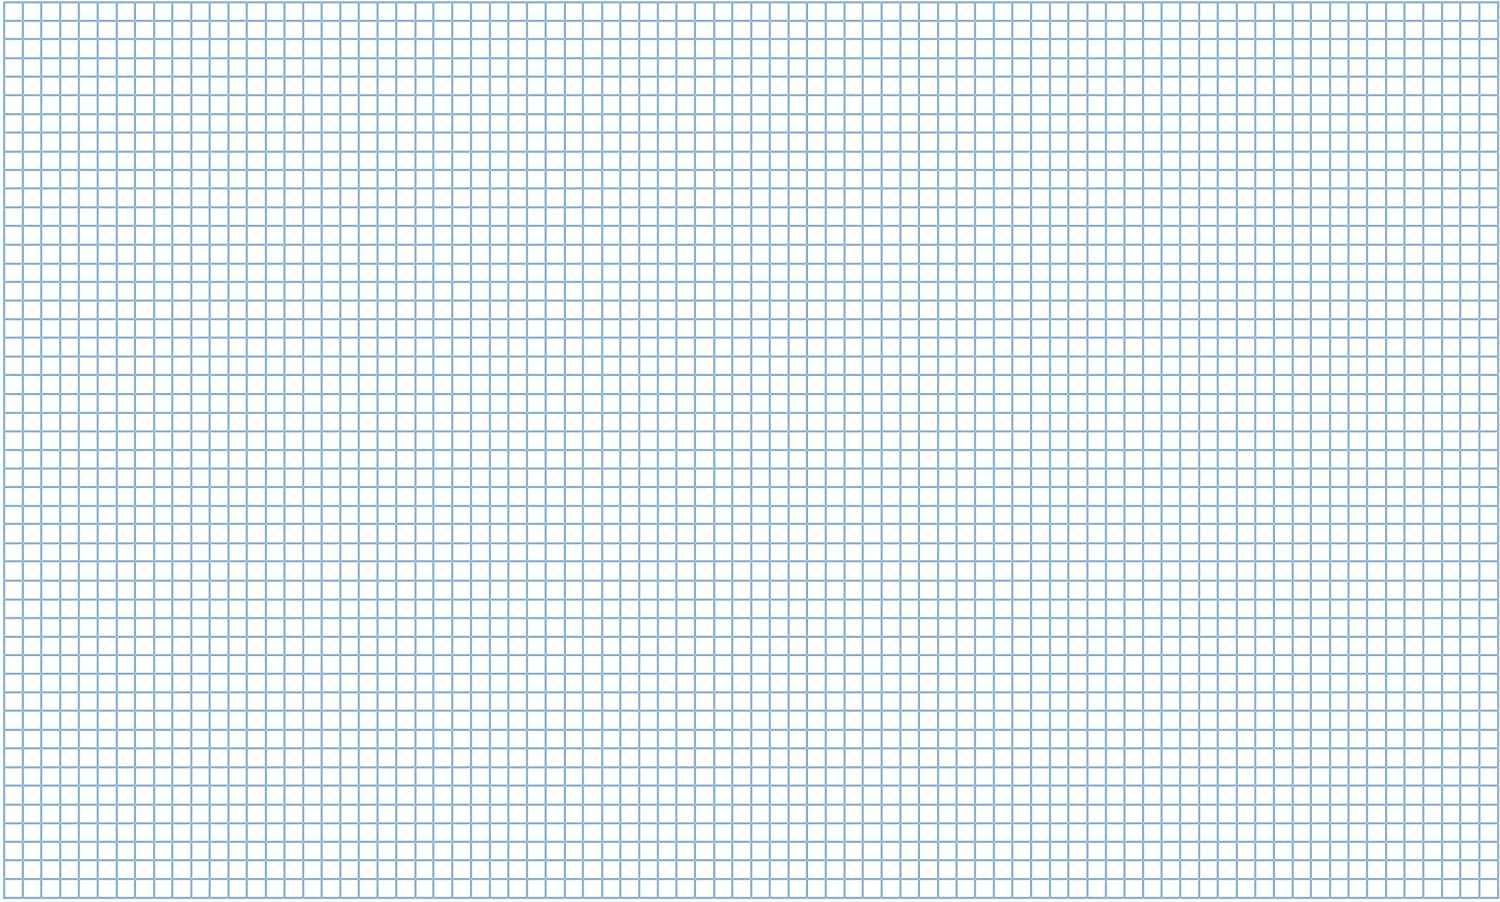 graph paper sizes elita aisushi co